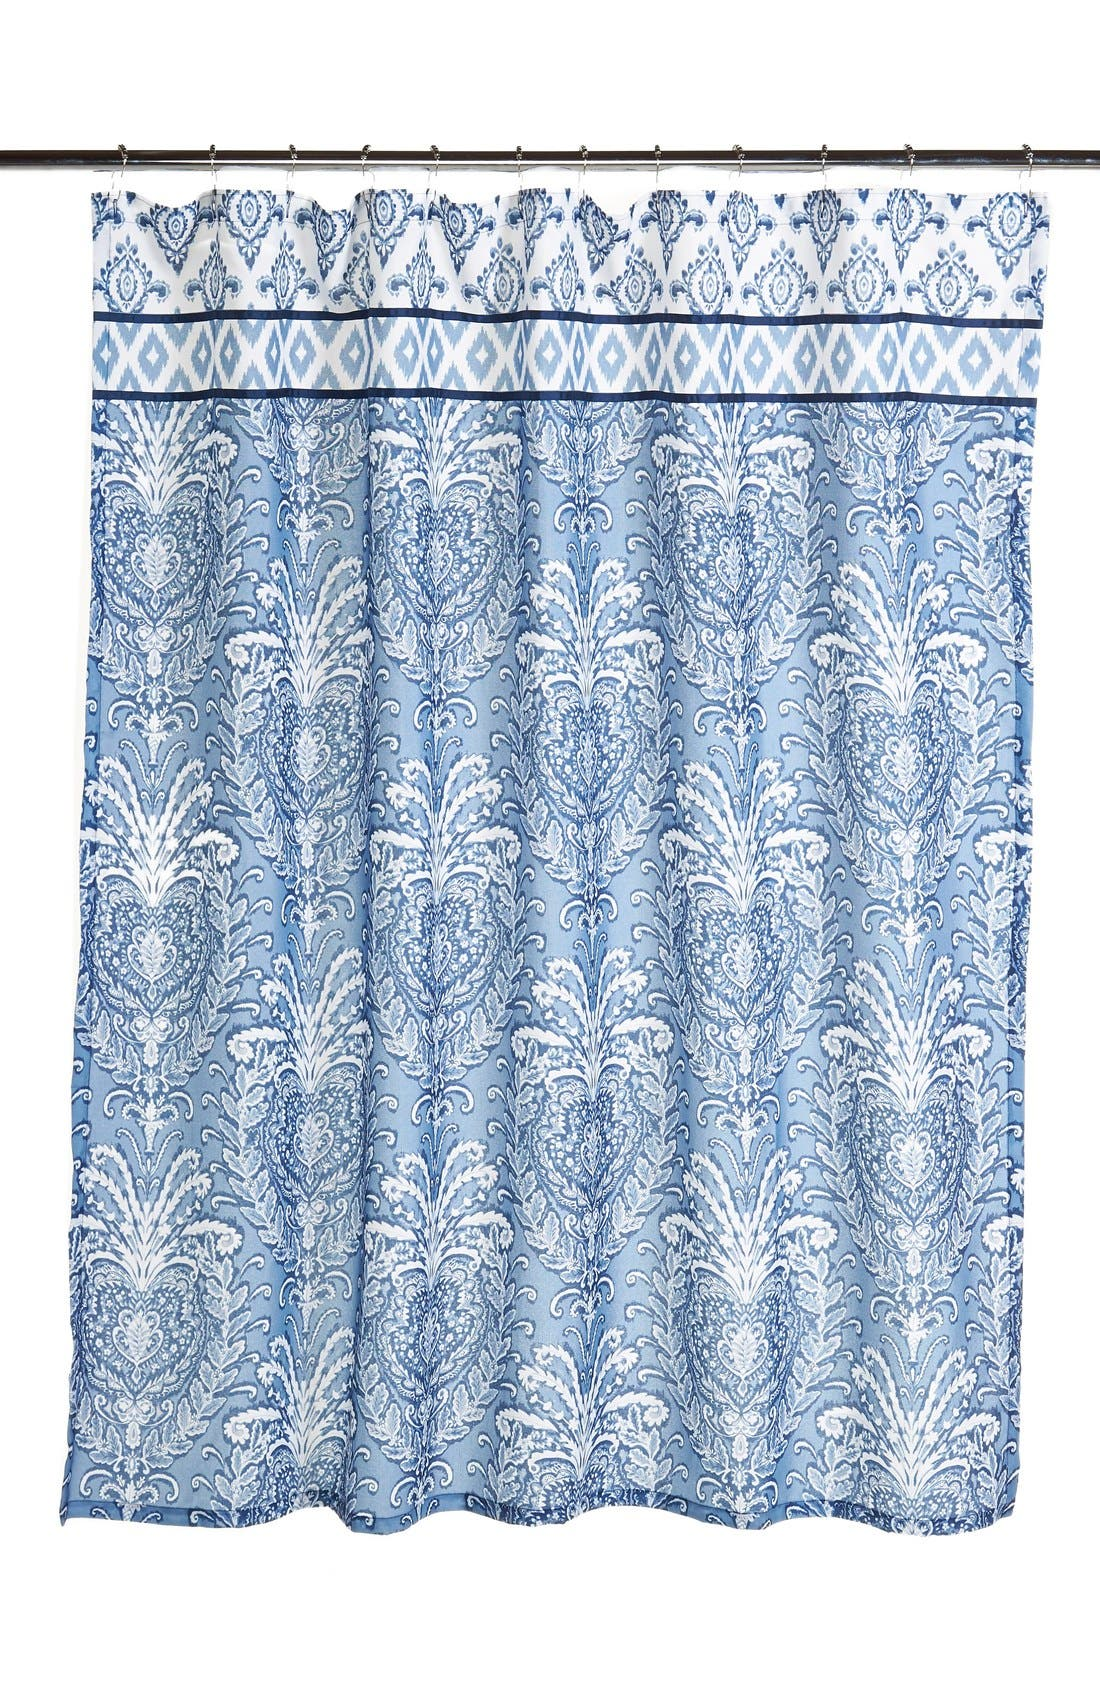 Alternate Image 1 Selected - Dena Home 'Madison' Ikat Print Shower Curtain